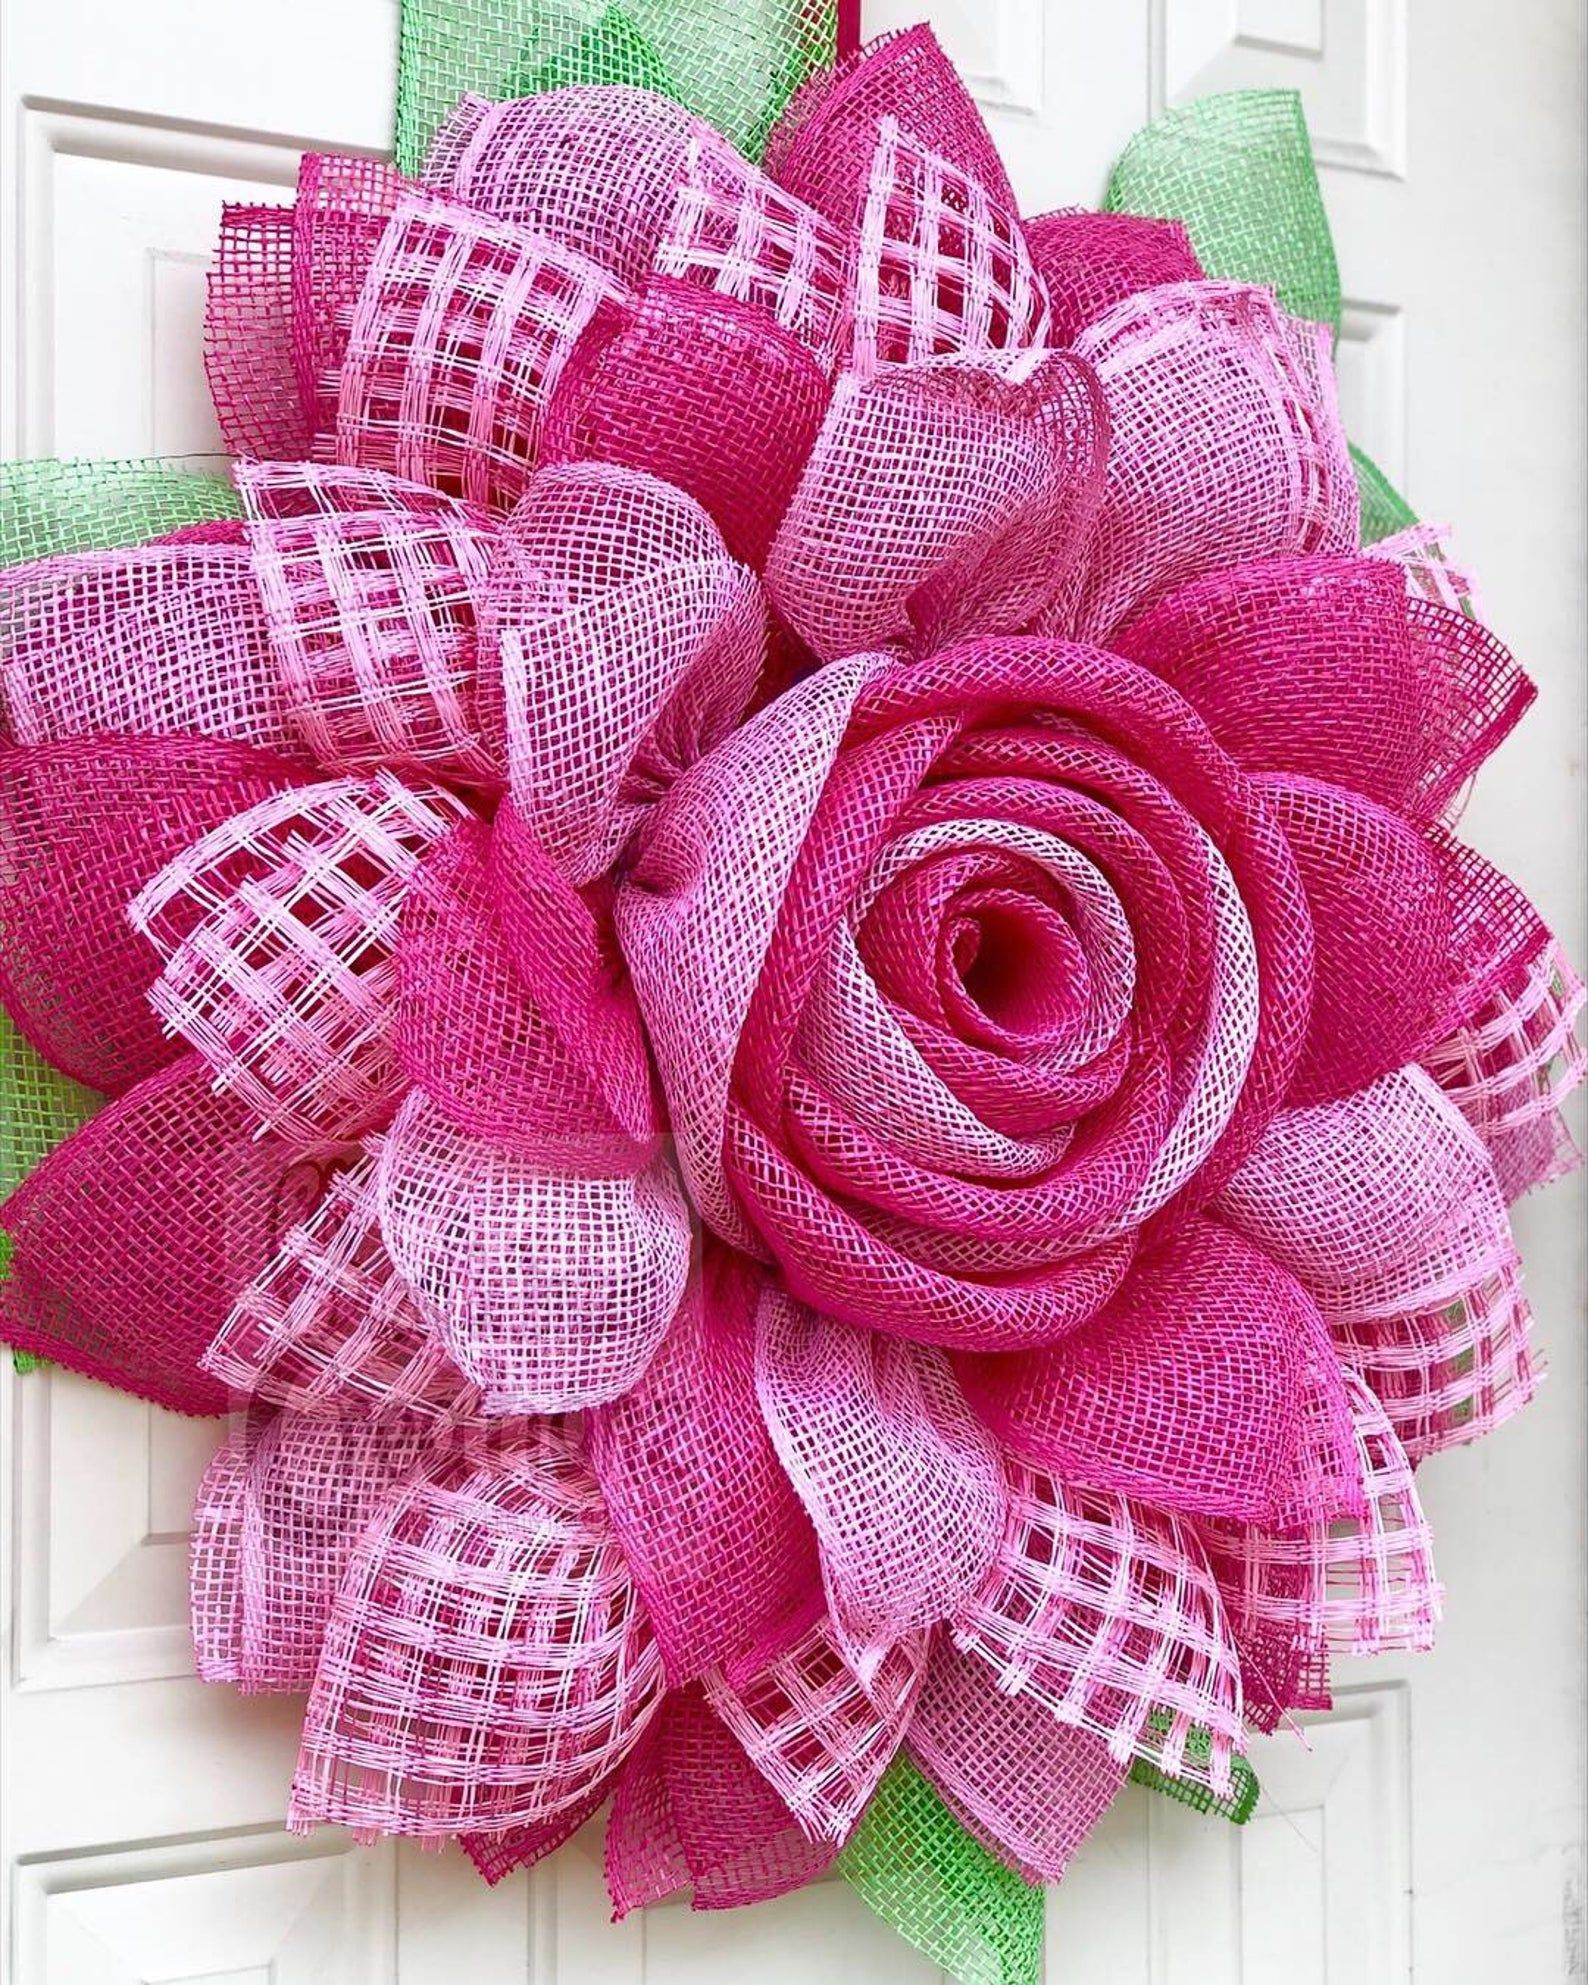 Large pink flower wreath with a rose center, spring summer wreath, wall decor, poly burlap wreath, custom wreath, front door wreath